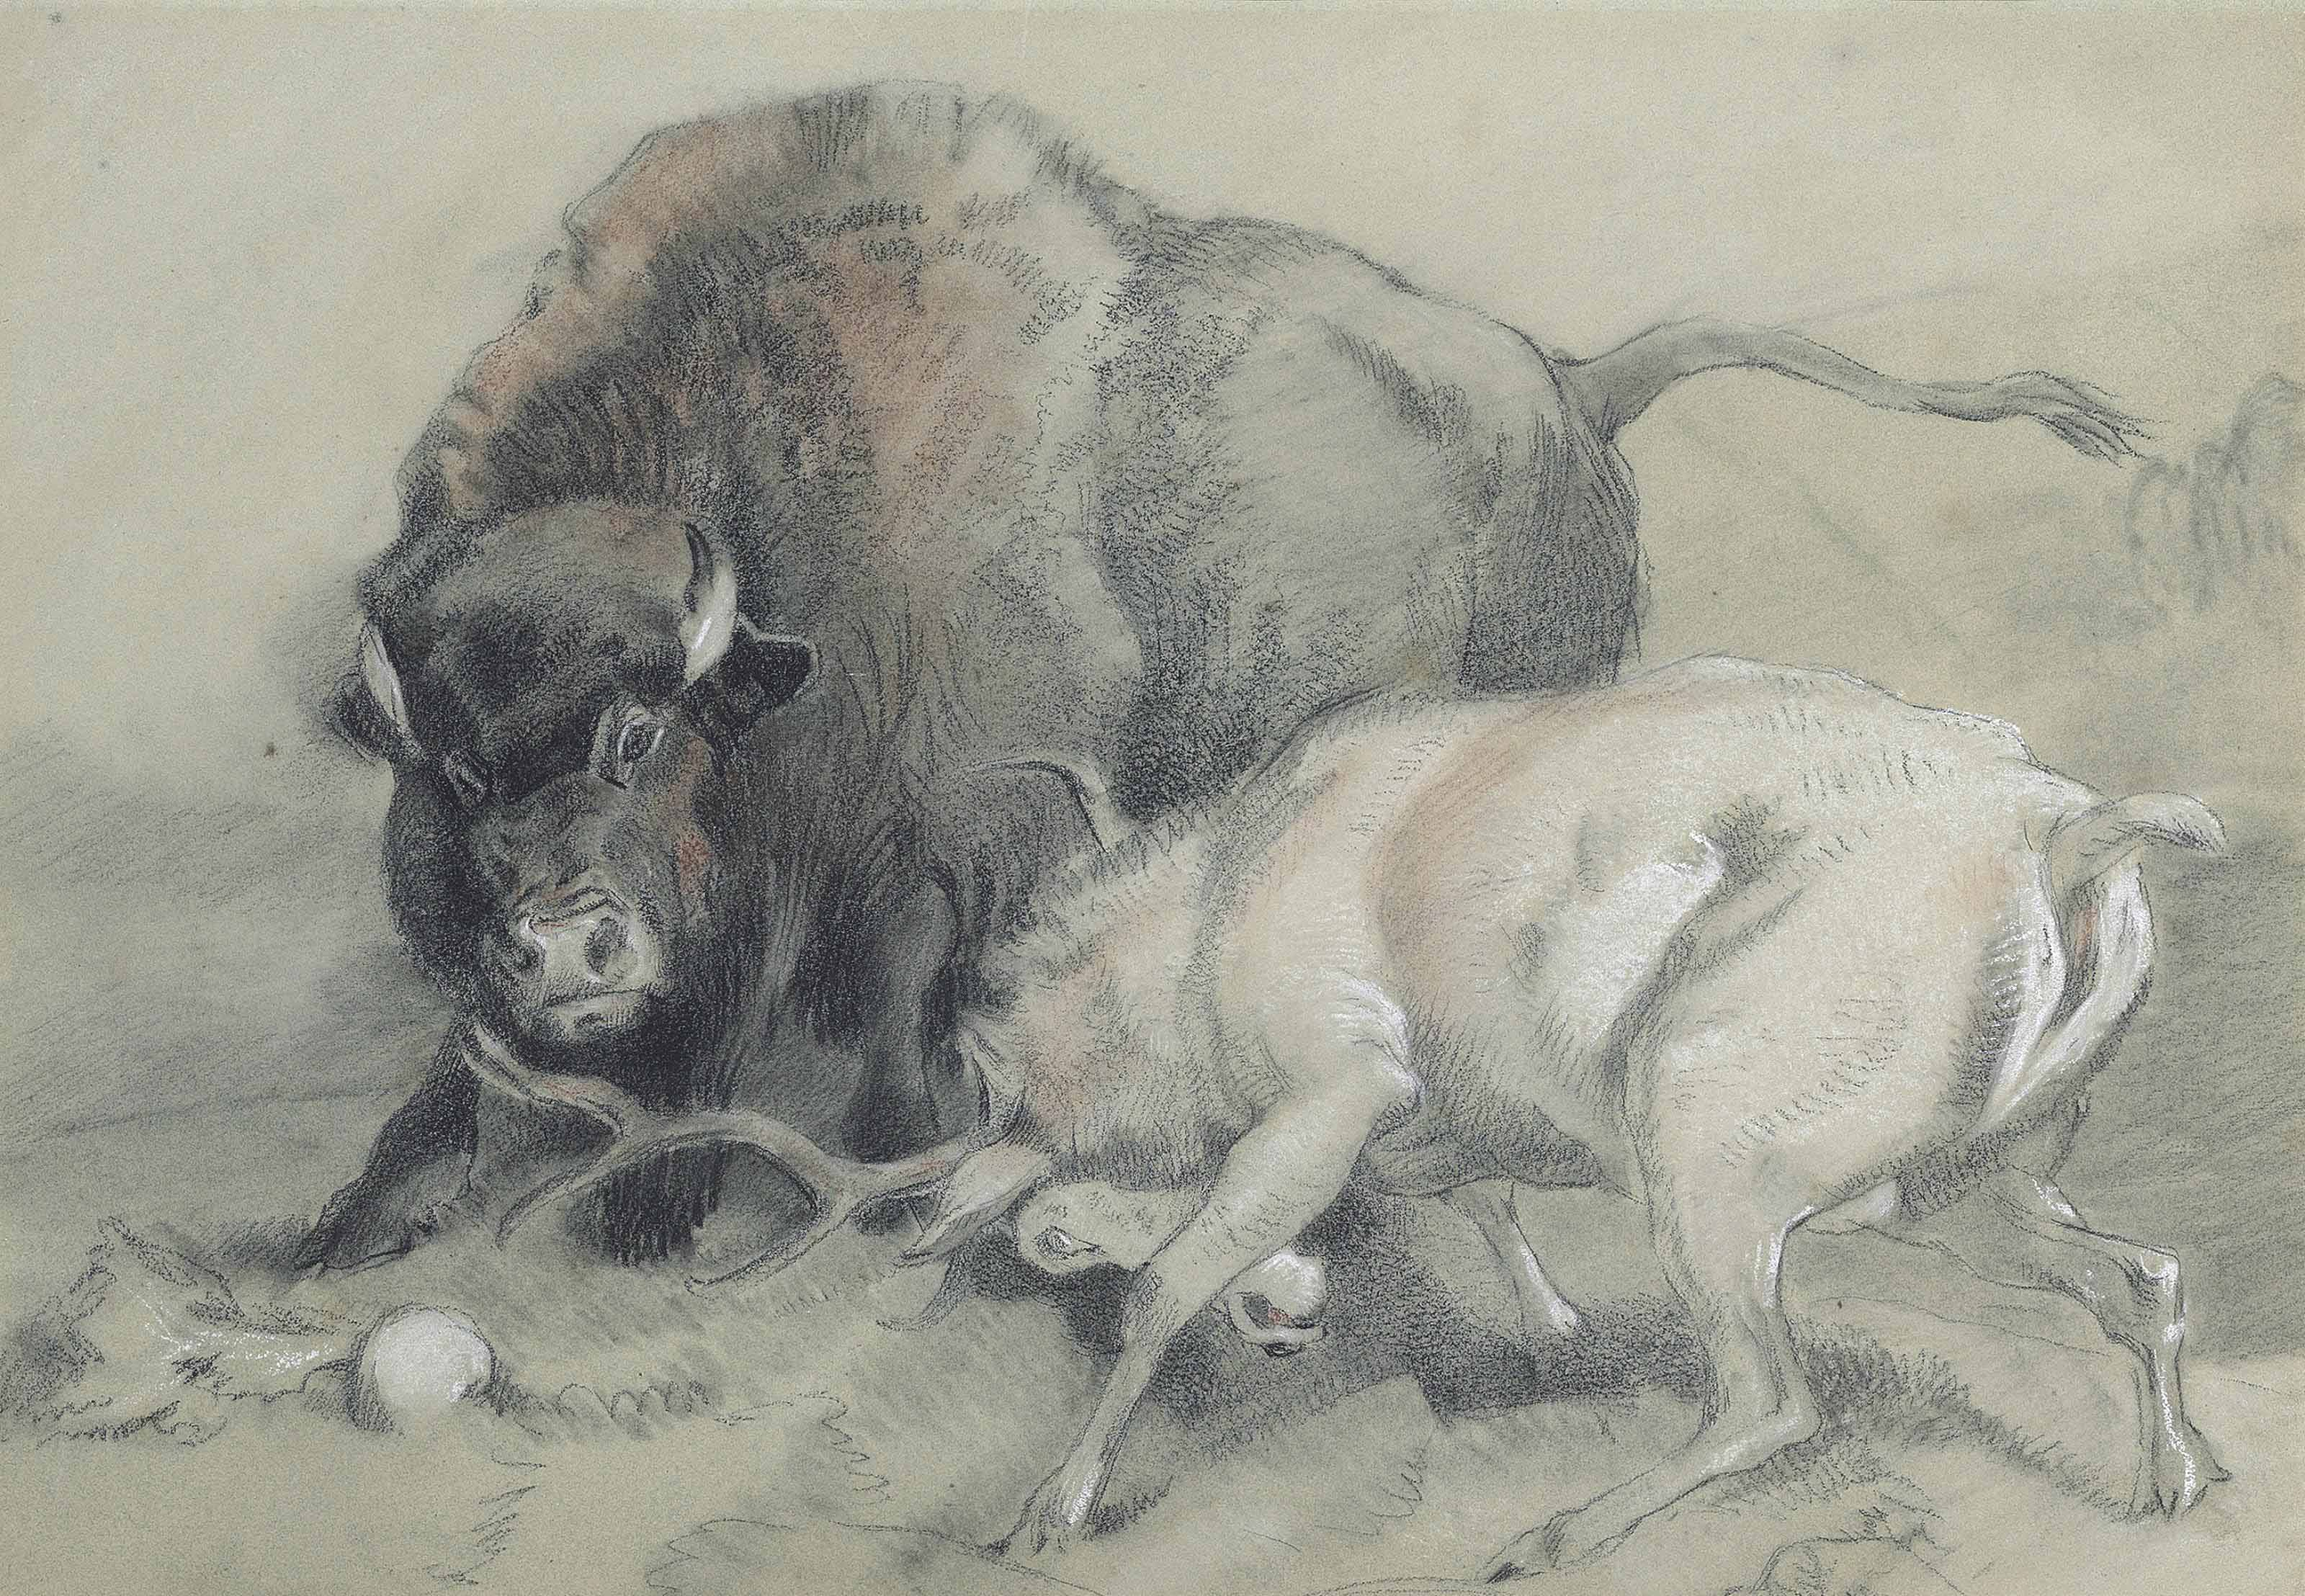 A stag challenging a bison